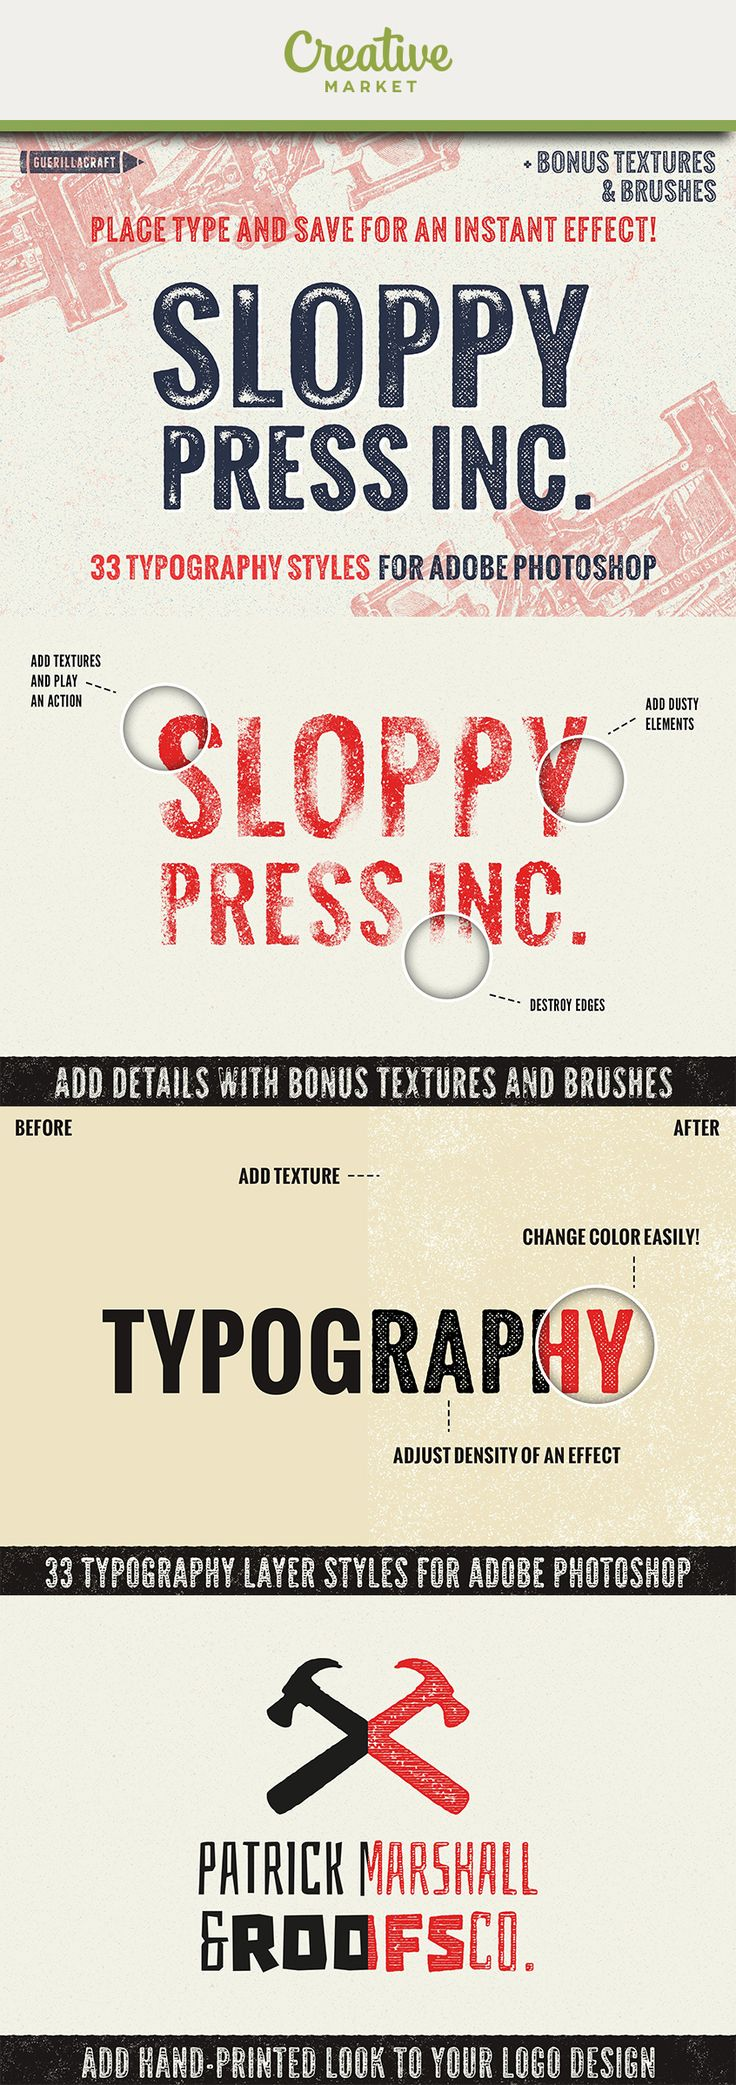 Ad: Sloppy Press INC. contains 33 typographic layer styles for Adobe Photoshop, textures, brushes and actions to make hand-printed typography effects instantly! If you need some nicehand-printed typography/or simple an one colour logo/ effect, look at this collections. It contains various layer style effects -from ragged edges through various stamp effects to halftone screen printingtypography styles.